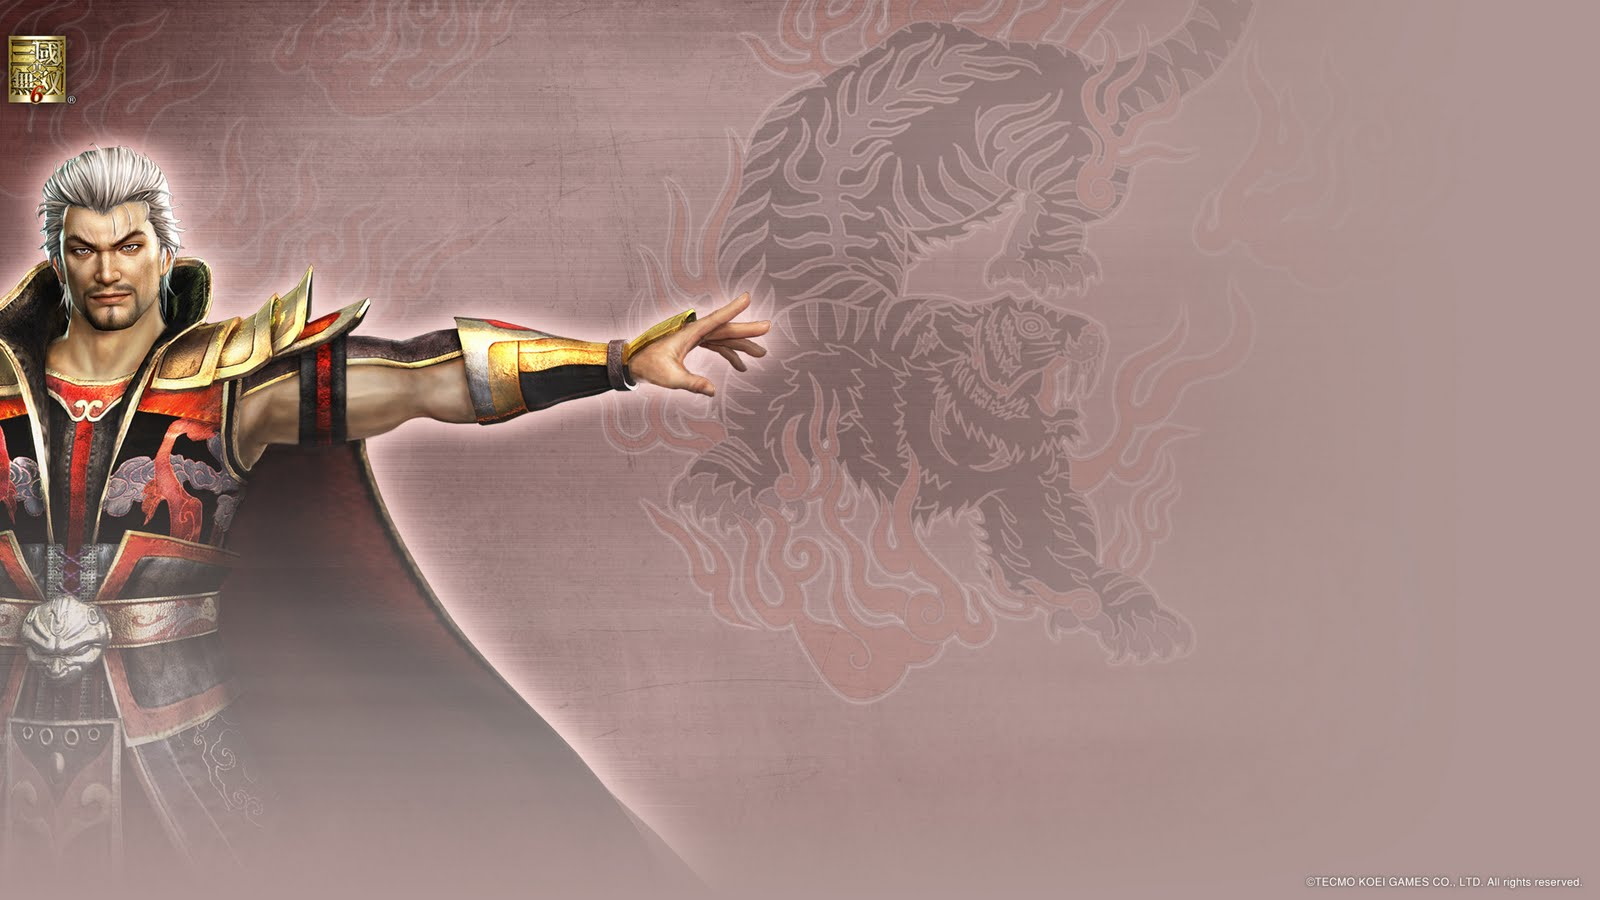 Dynasty warriors HD & Widescreen Wallpaper 0.901223849700227